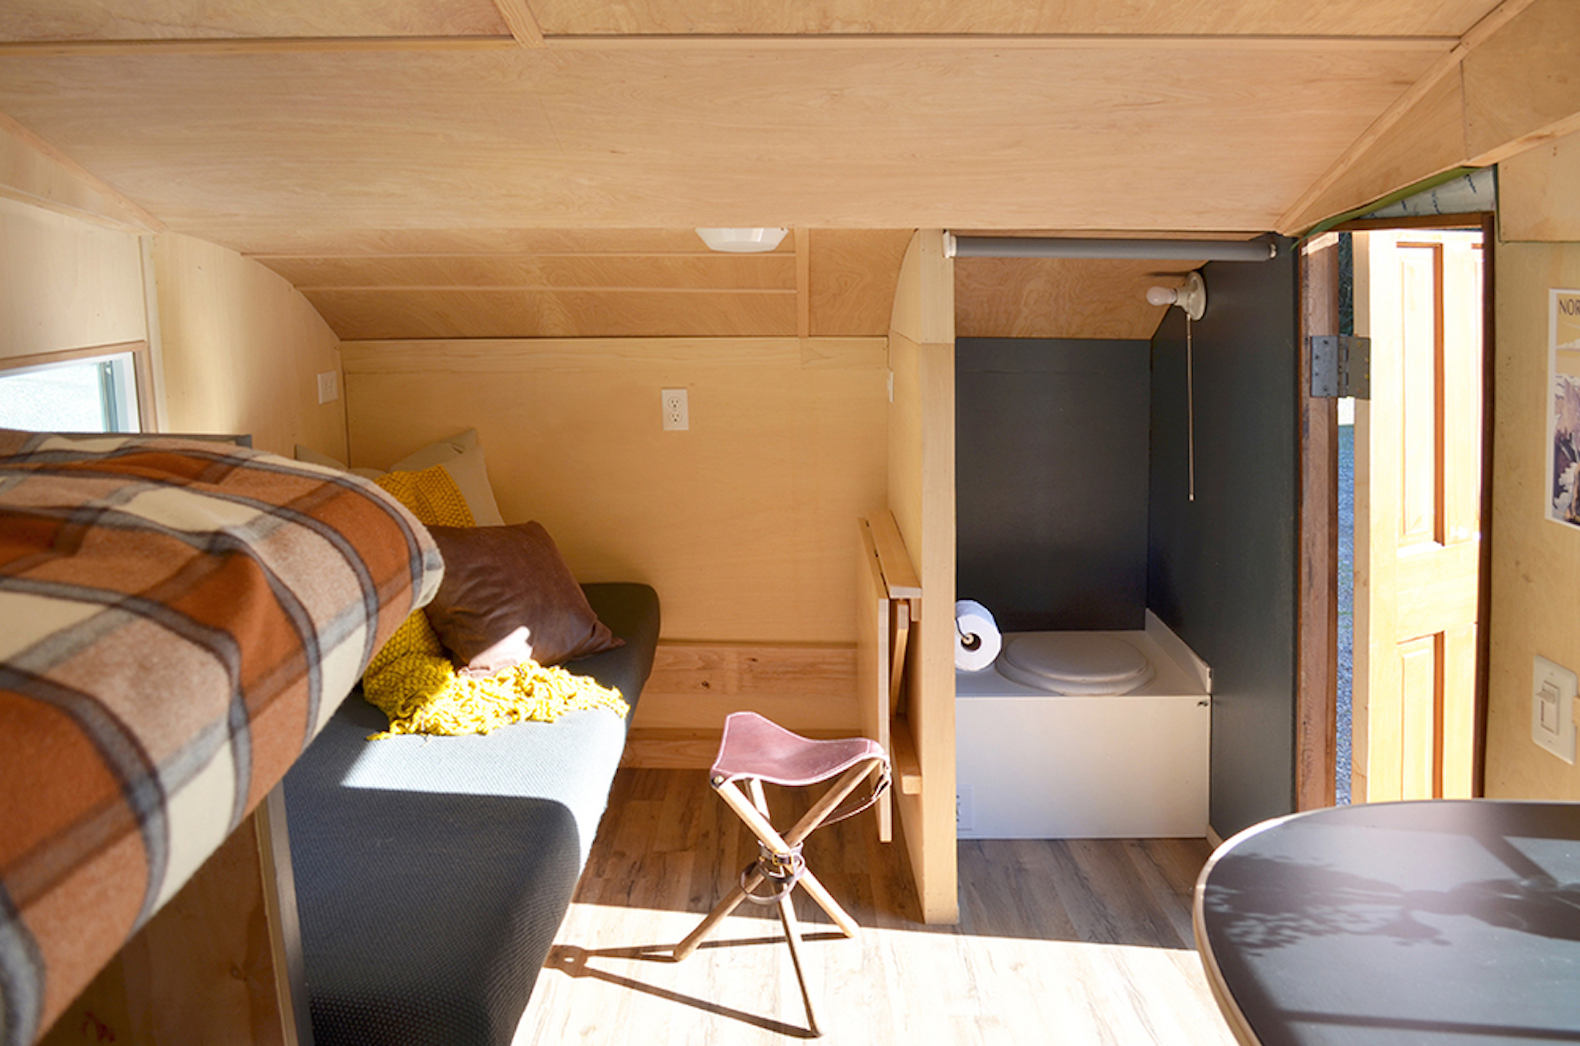 Charming wood teardrop trailer is perfect for offgrid eco